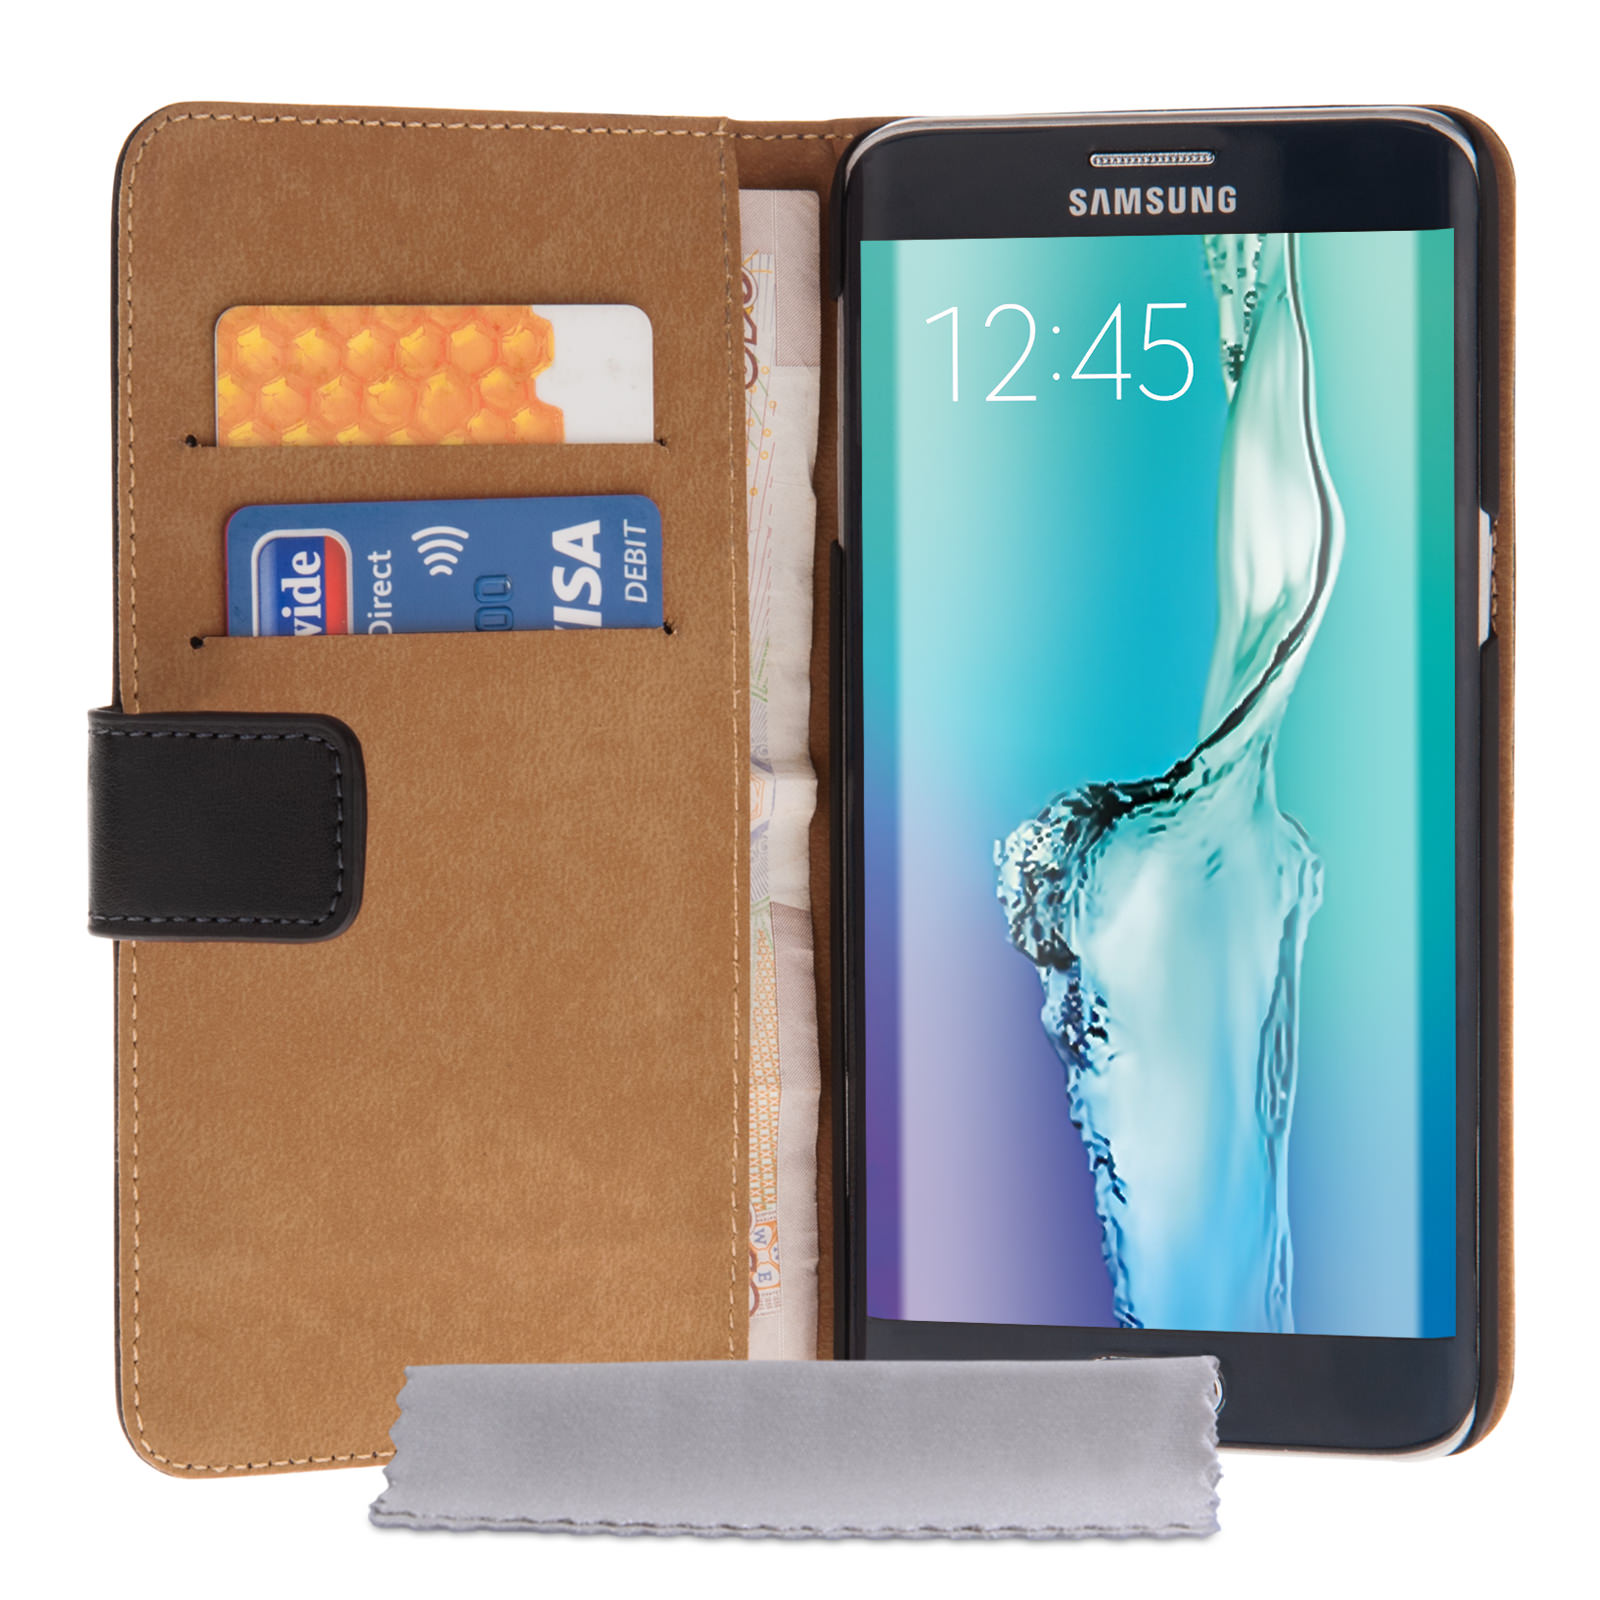 Yousave Accessories Samsung Galaxy S6 Edge Plus Real Leather Wallet Case -Black